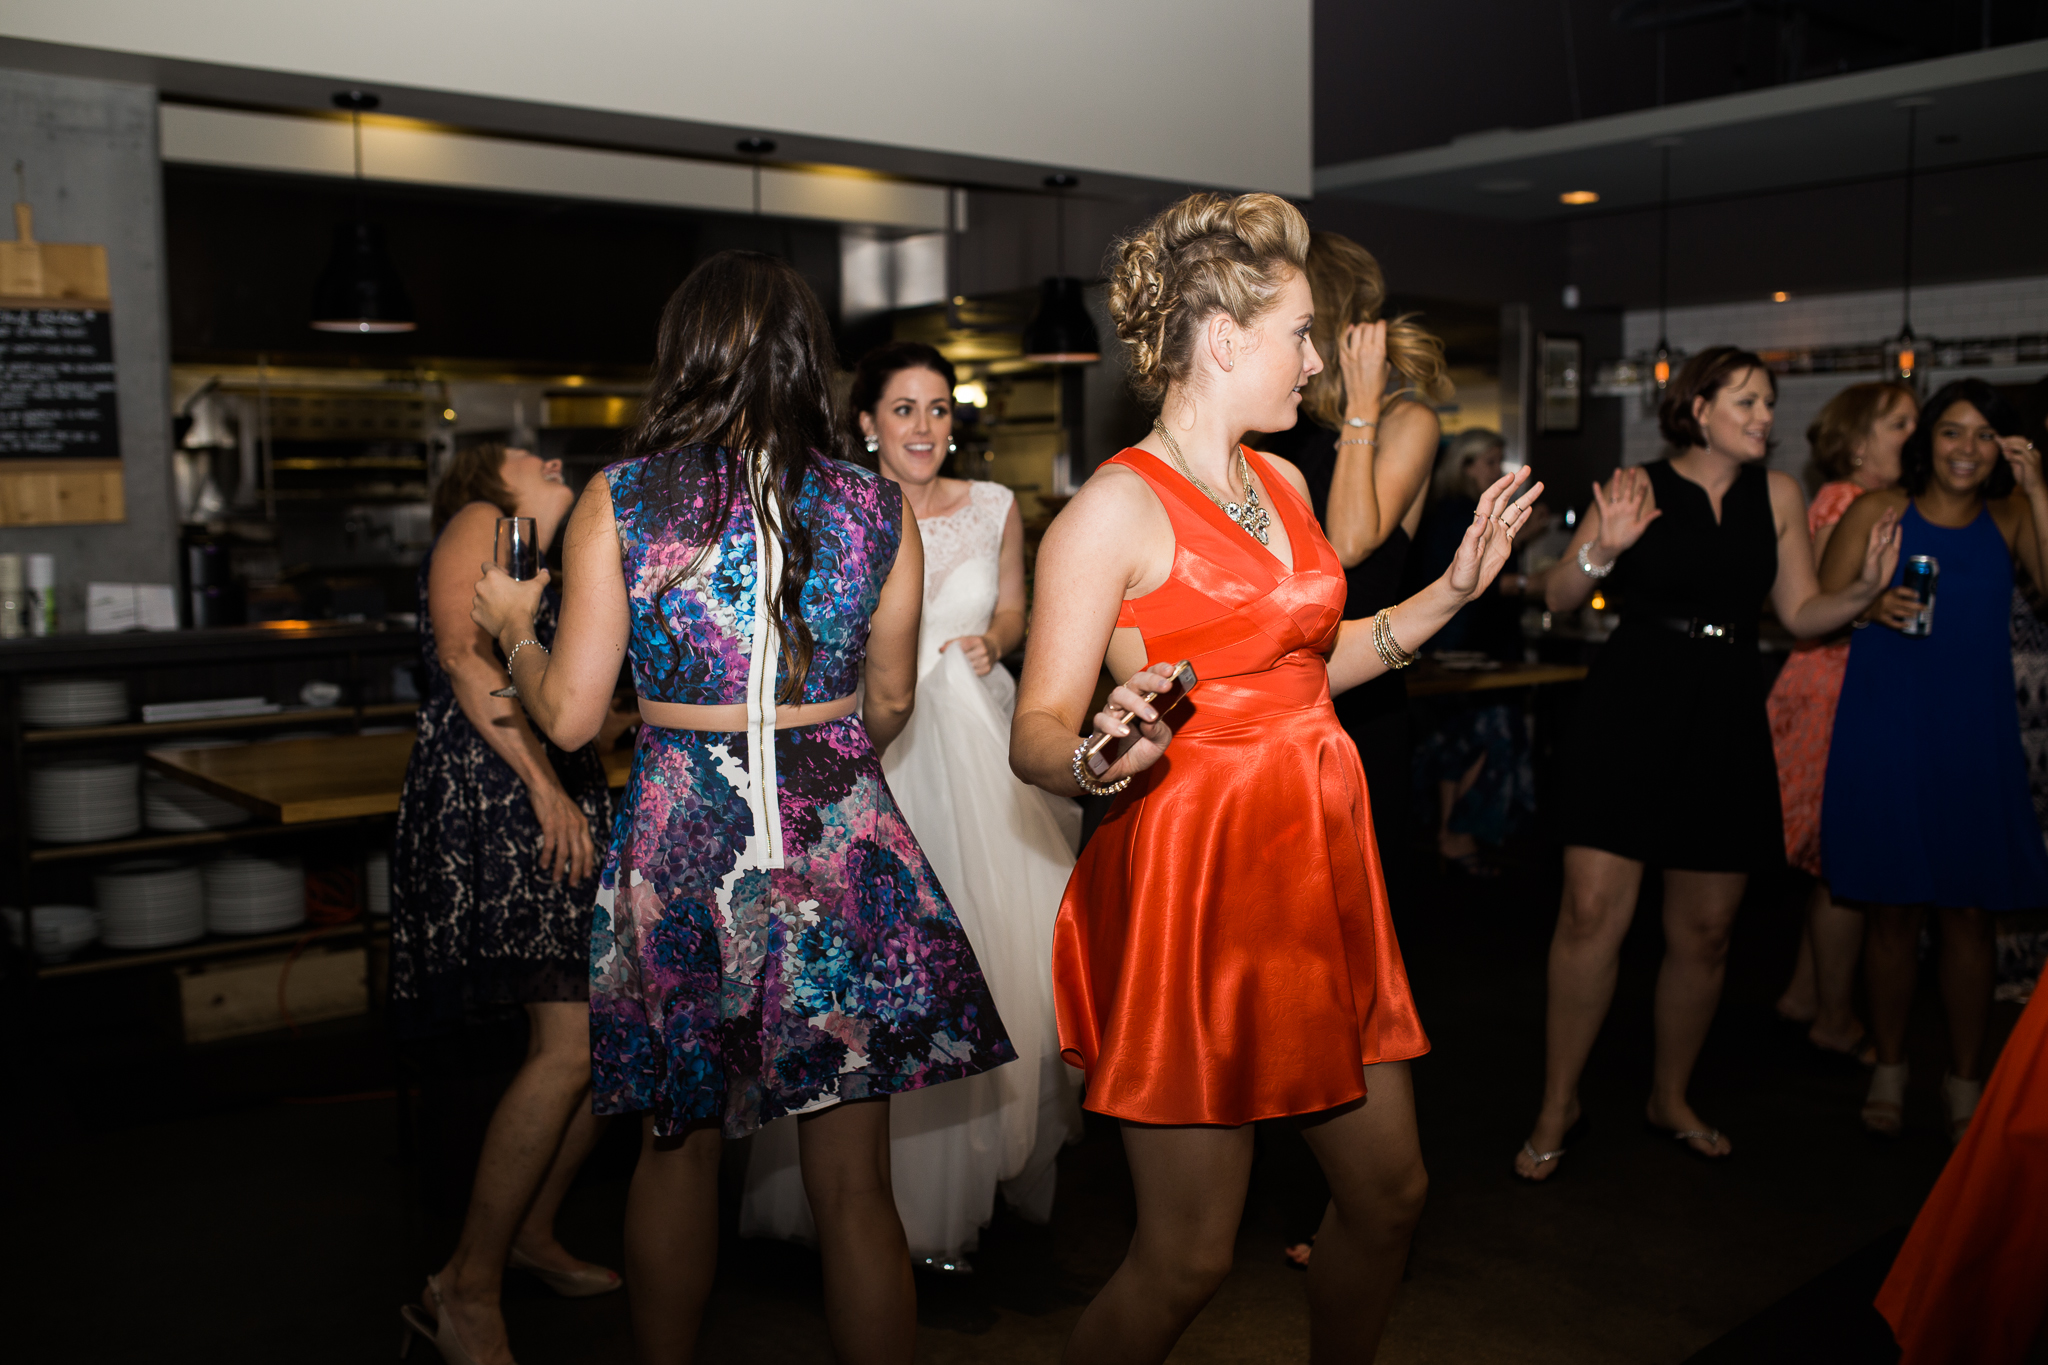 Coohills Wedding Photographer - dance party inside Coohills